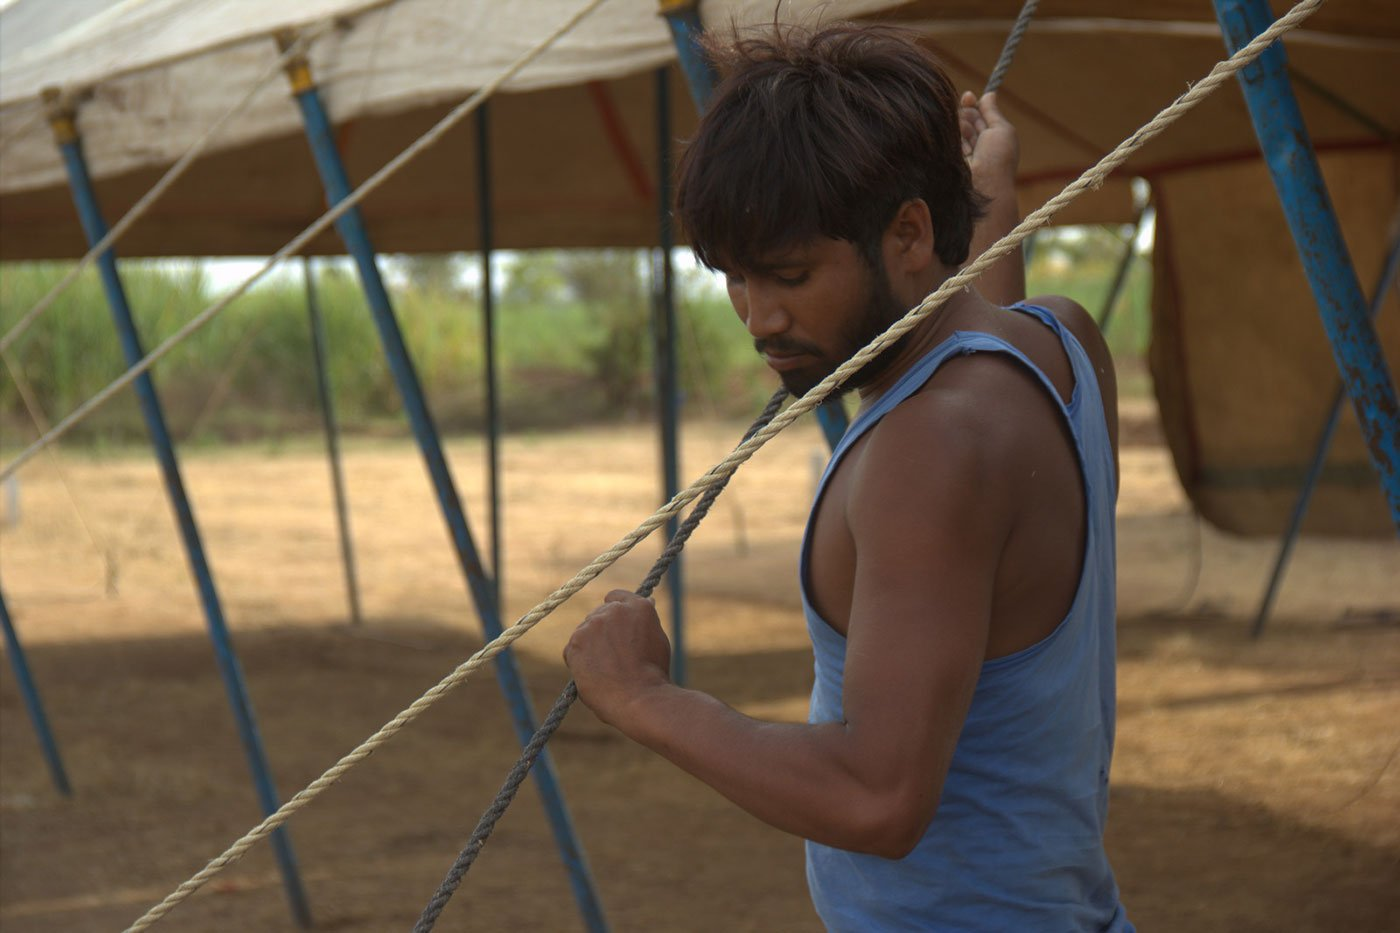 Lallan Paswan from Aumau village, Lucknow district, UP works on the tents on 4 May 2018 in Karavadi village, Satara district, in western Maharashtra